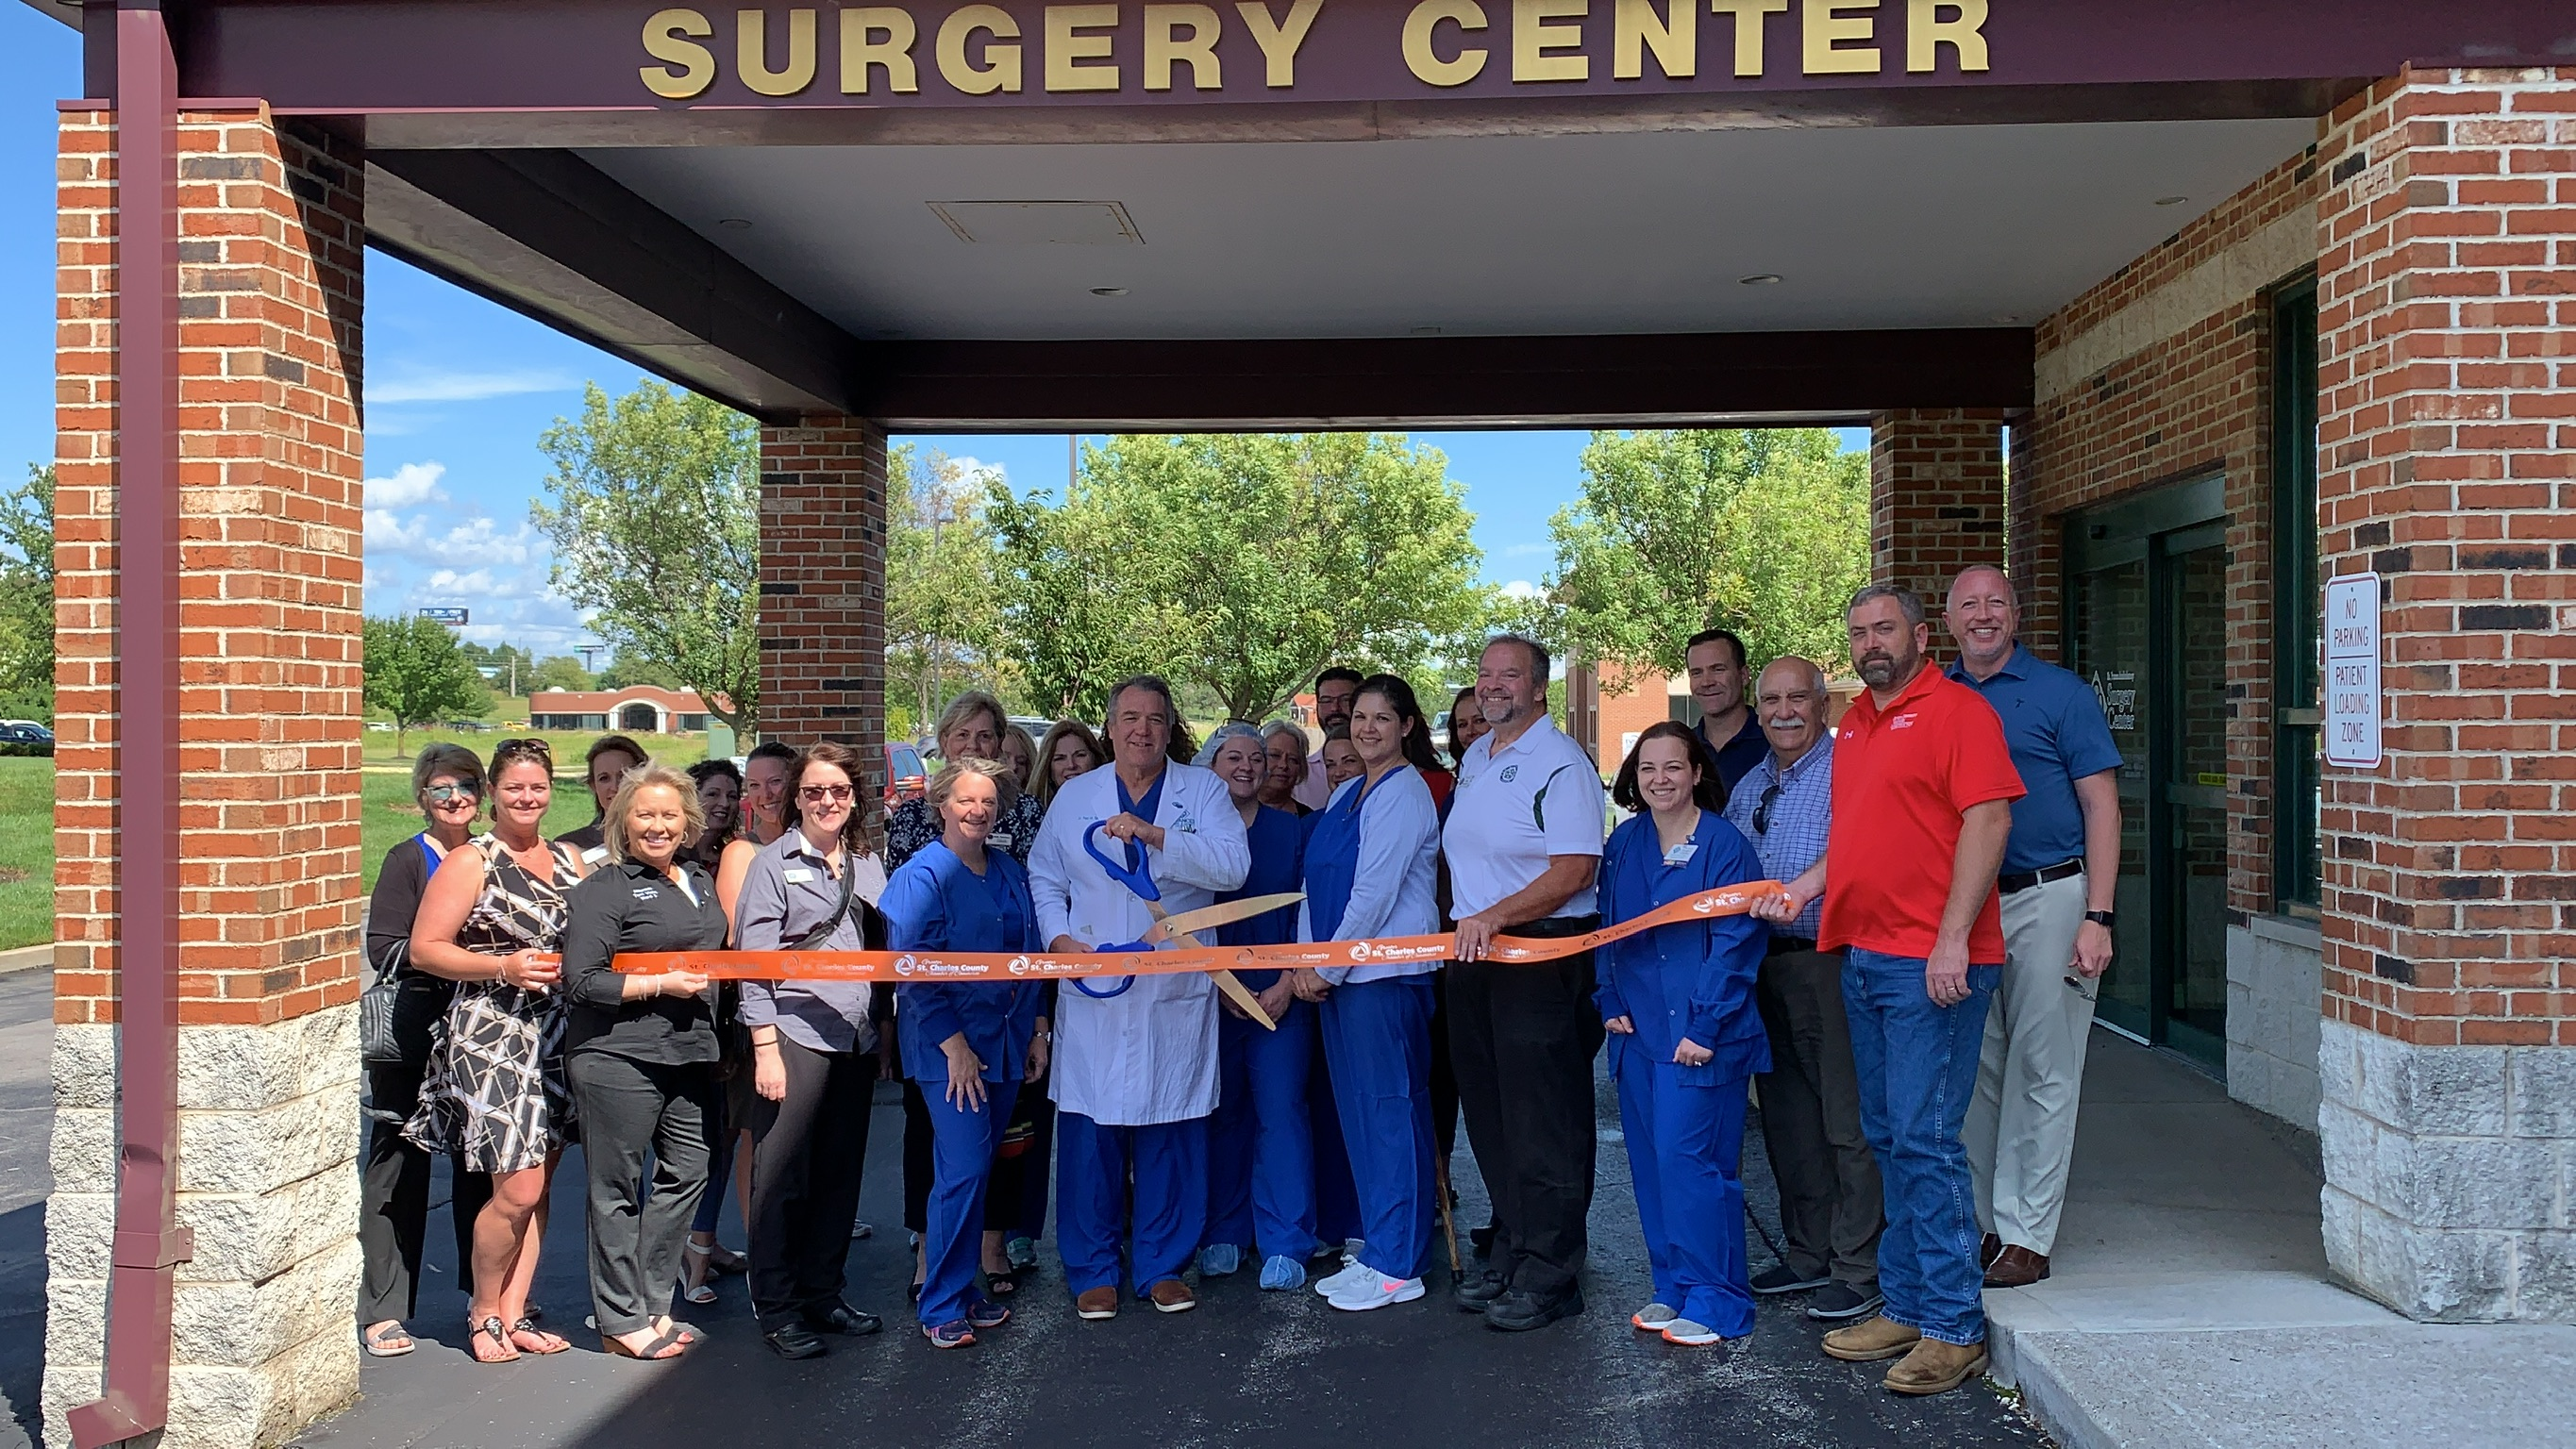 Image for Novamed Surgery of St. Peters / St. Peters Ambulatory Surgery Center Celebrates 20th anniversary with Ribbon Cutting